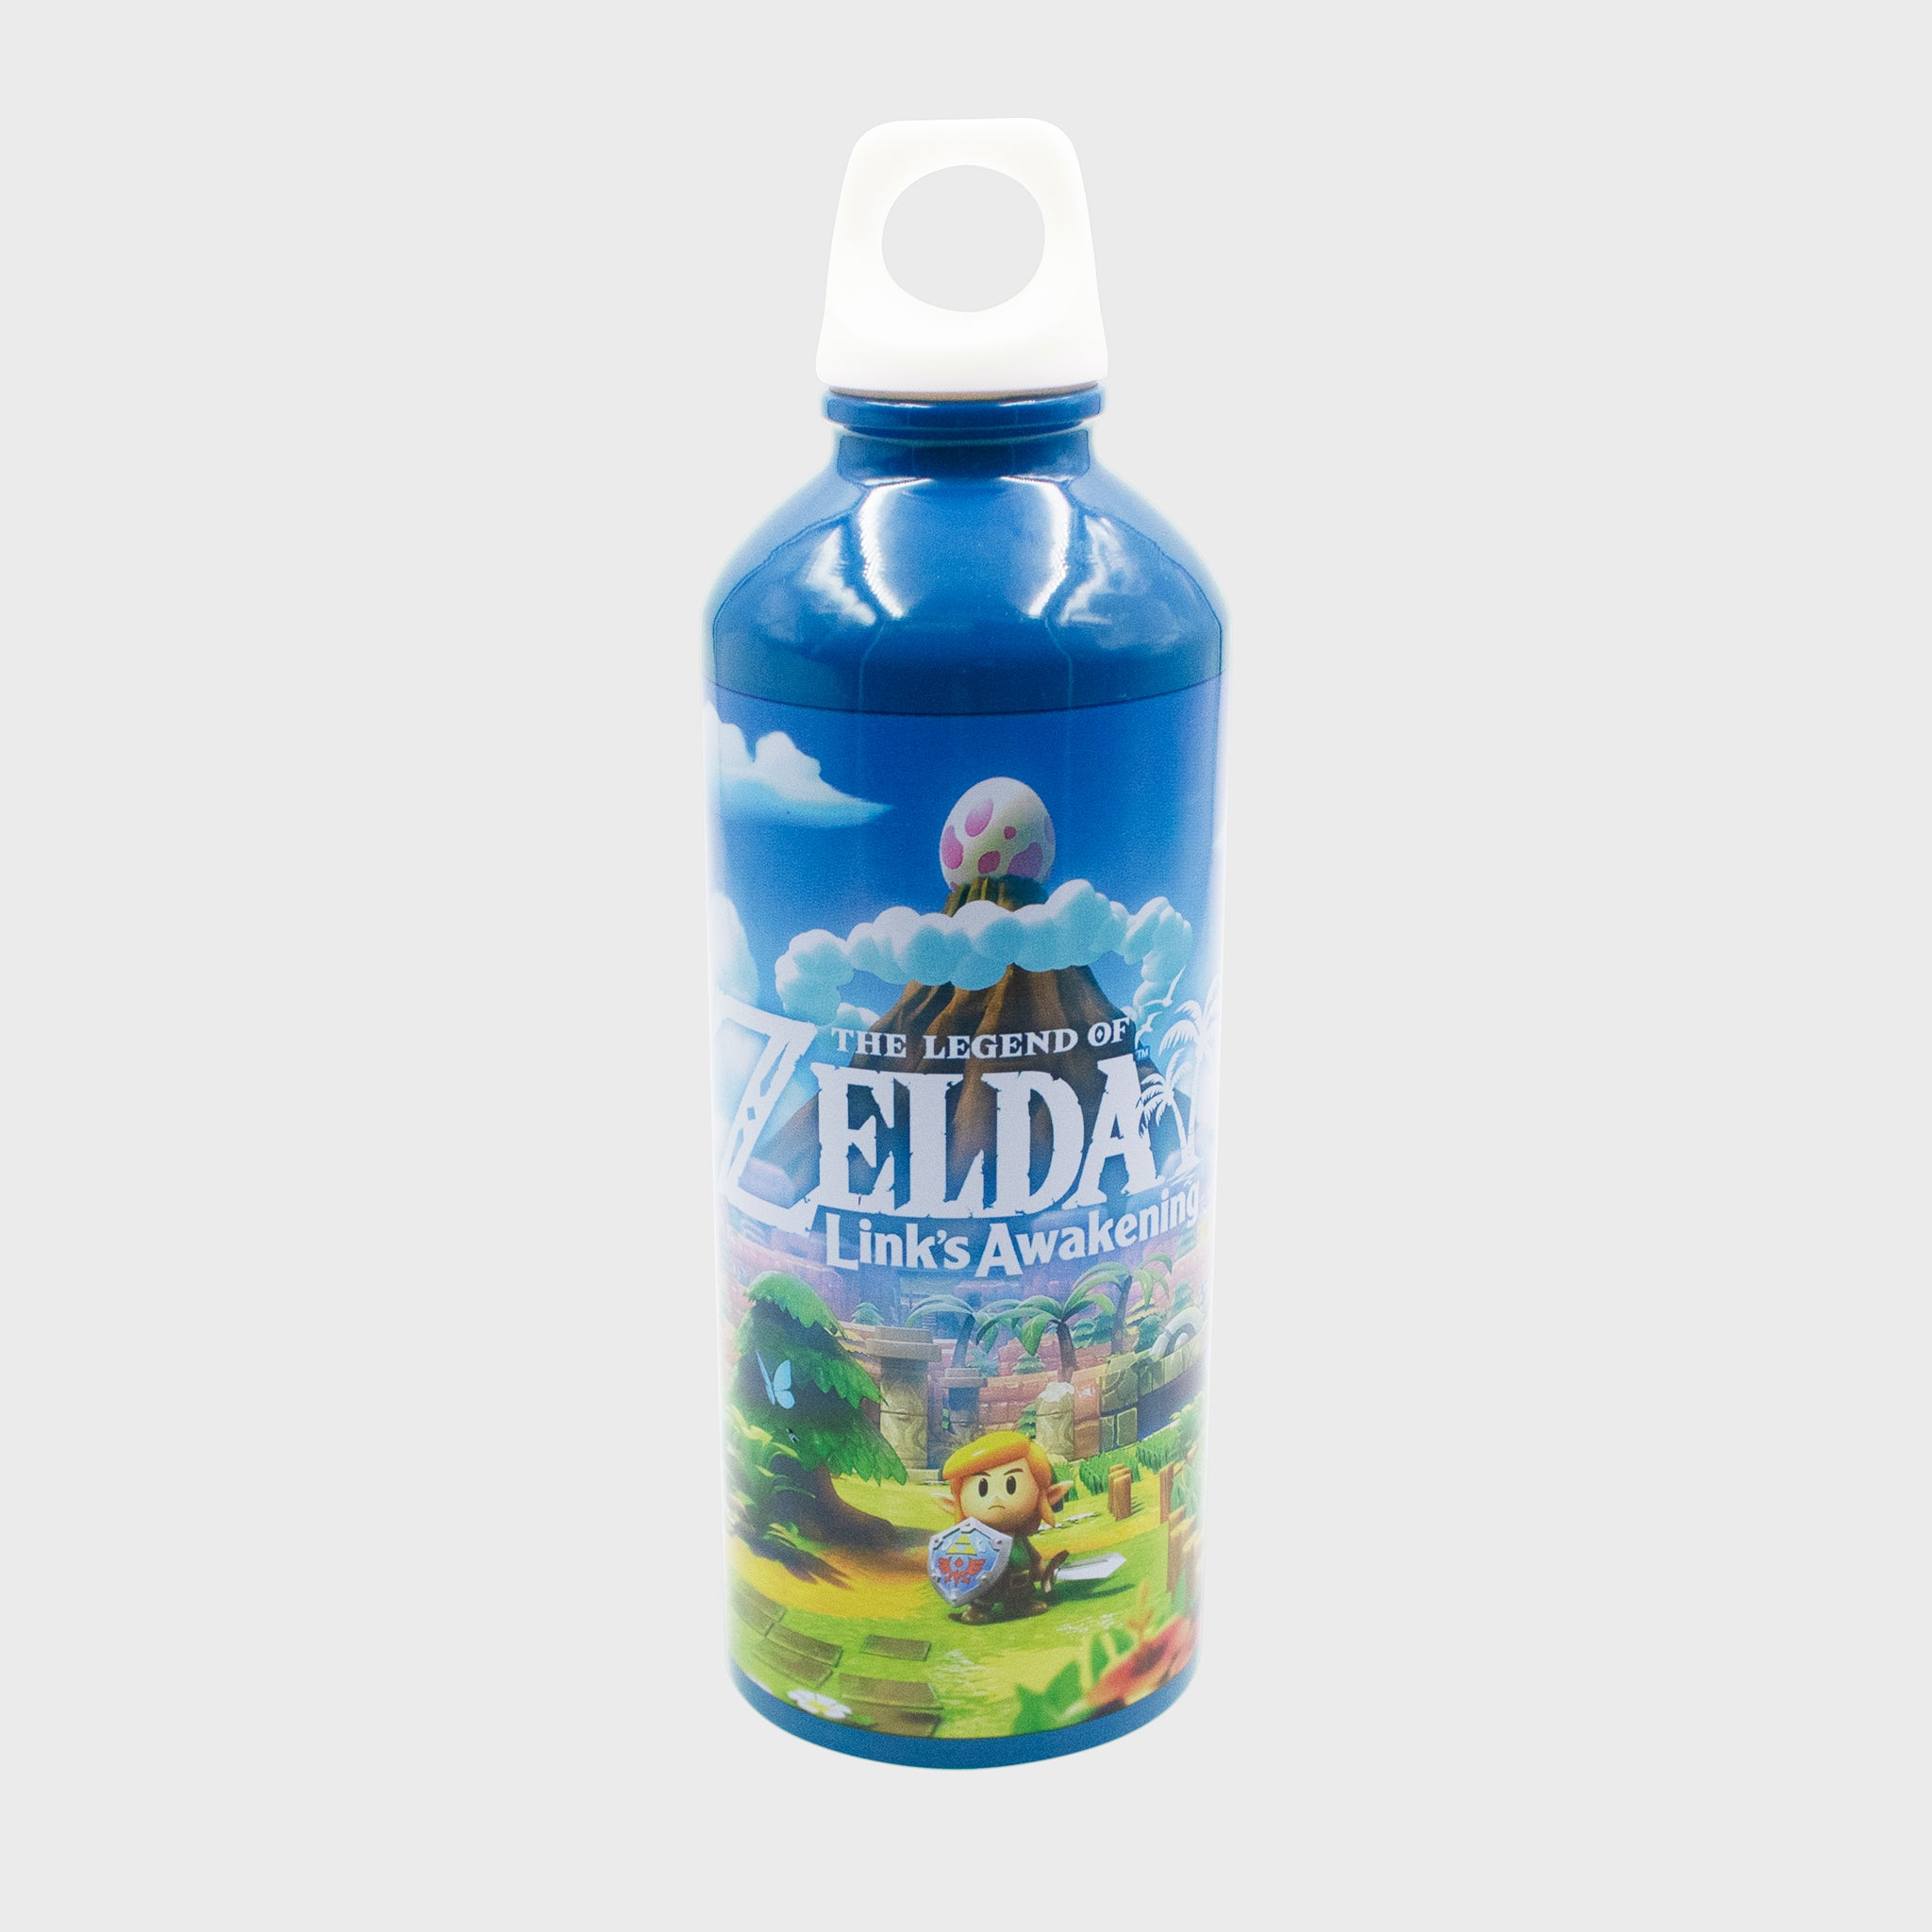 the legend of zelda link's awakening 2019 nintendo loz collector's box exclusive collectible drinkware sport water bottle accessory culturefly